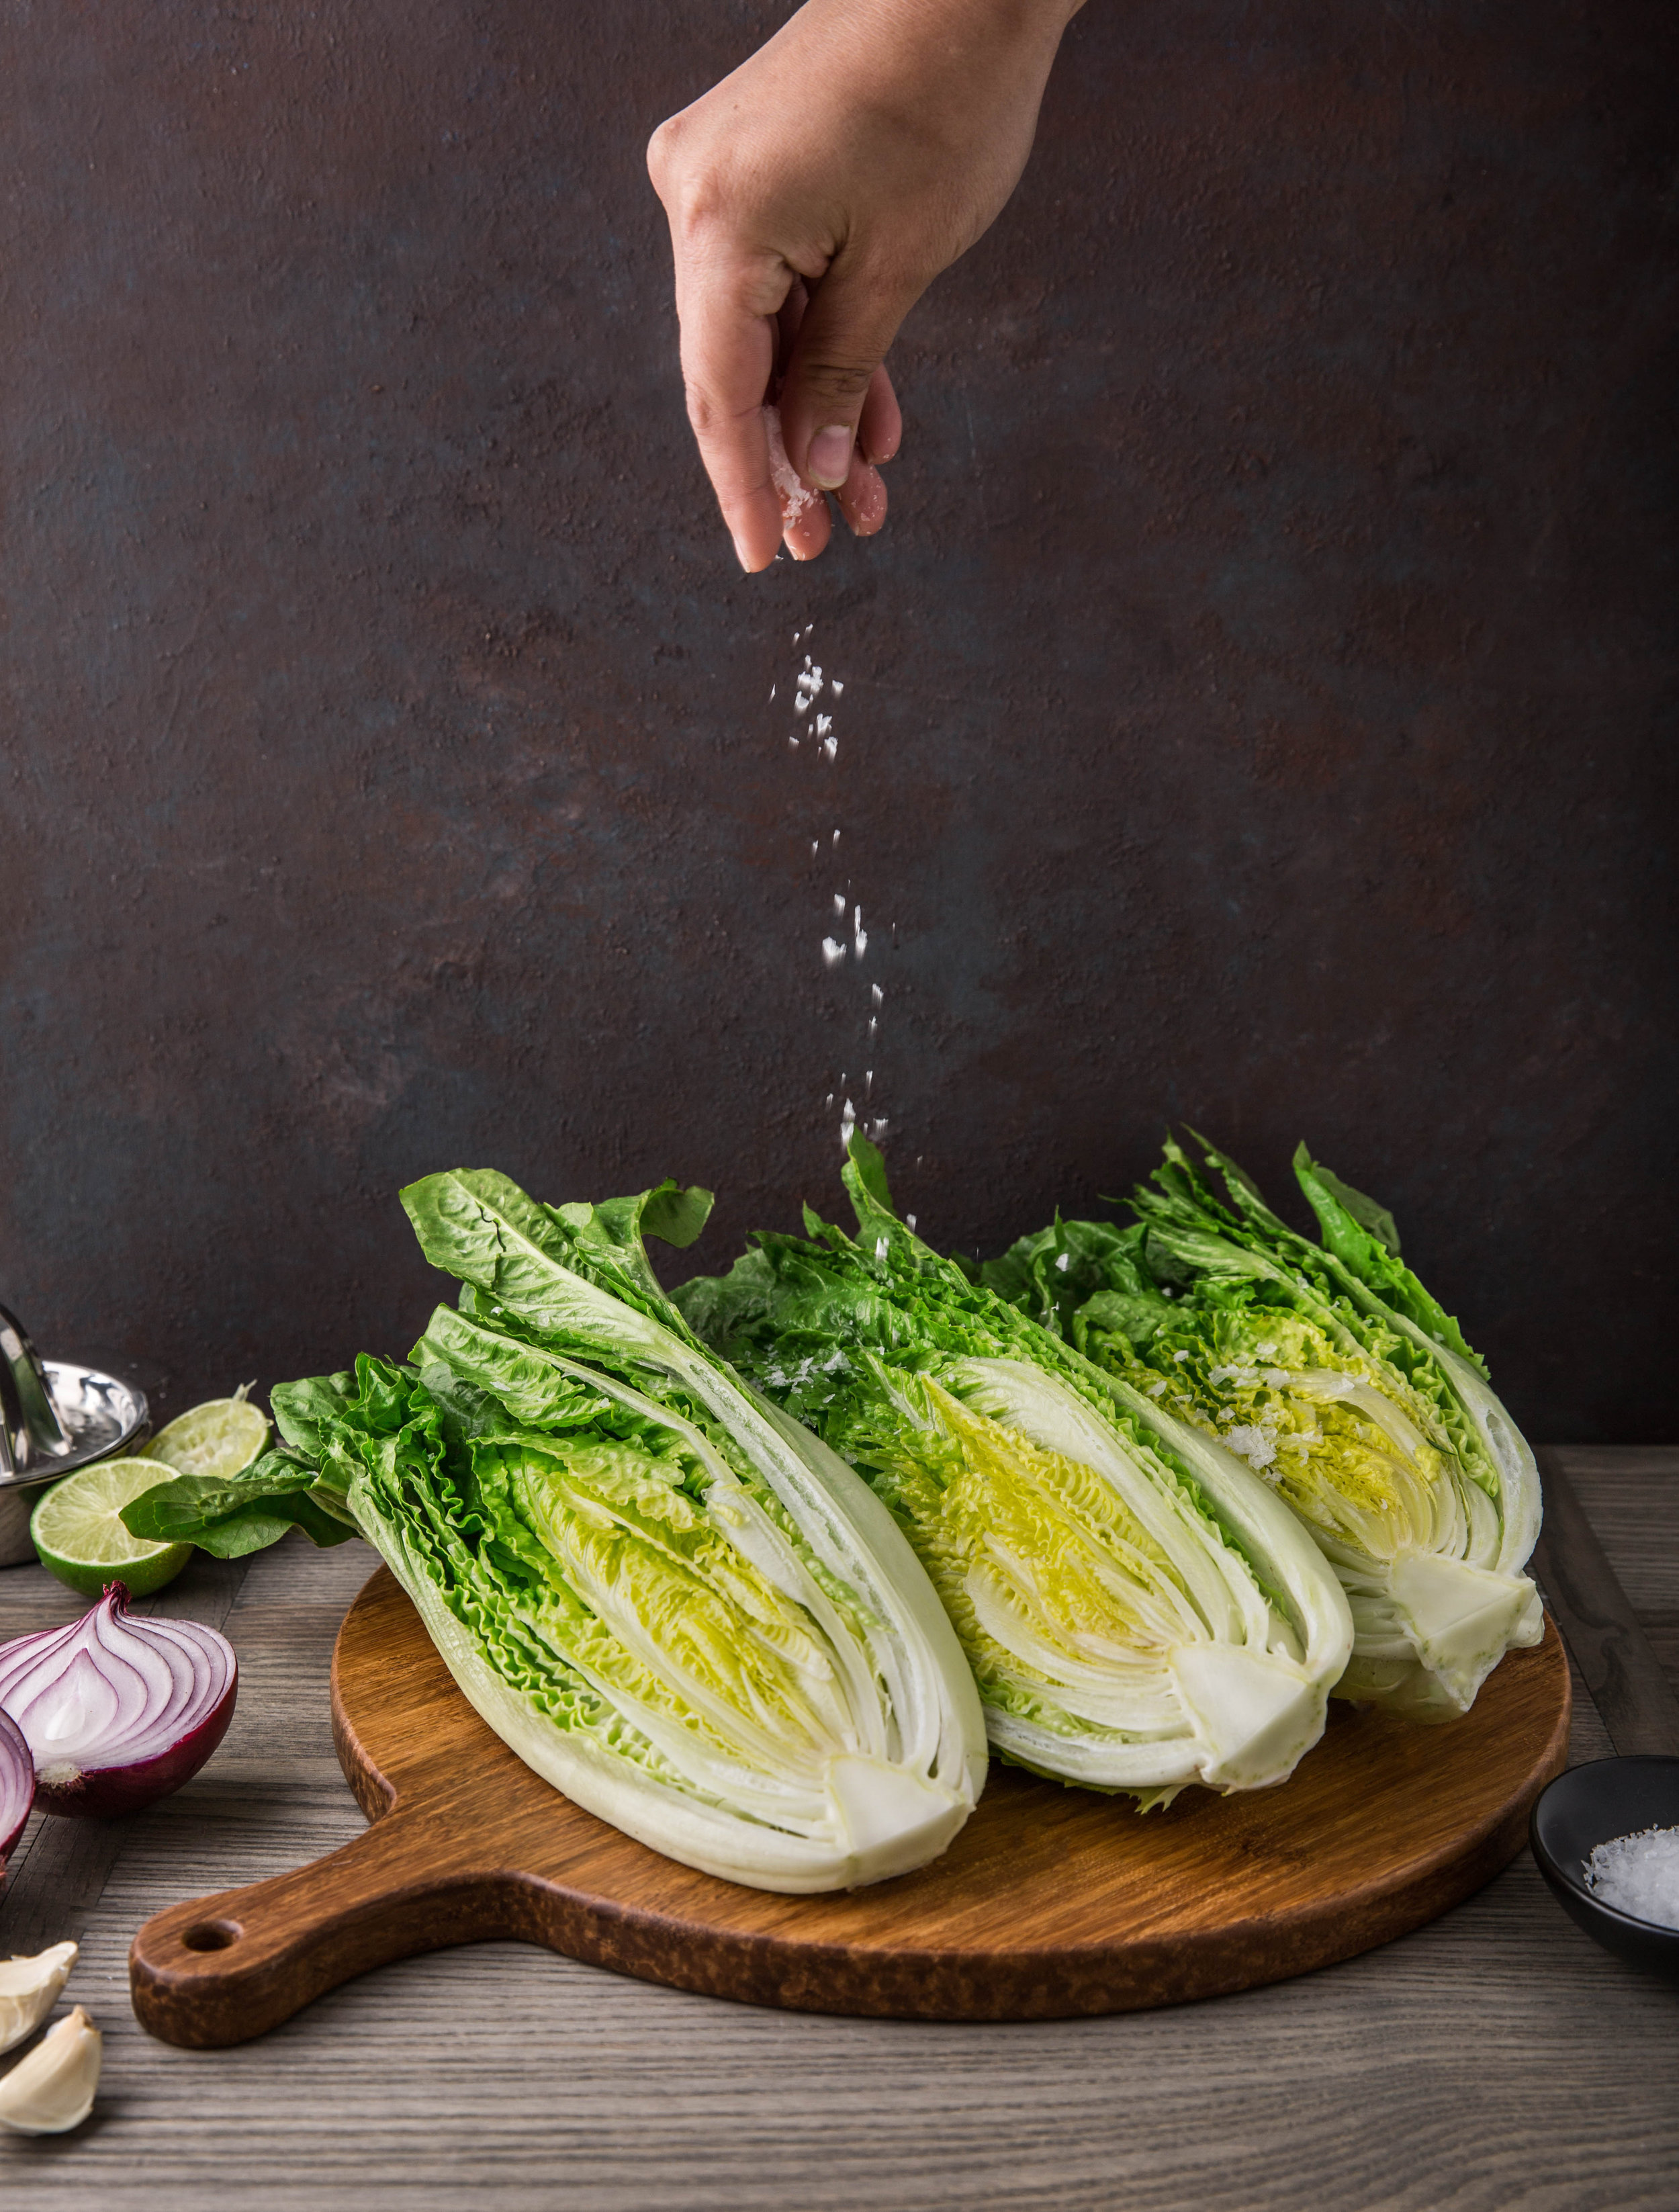 Grilled Romaine_Prep 2.JPG